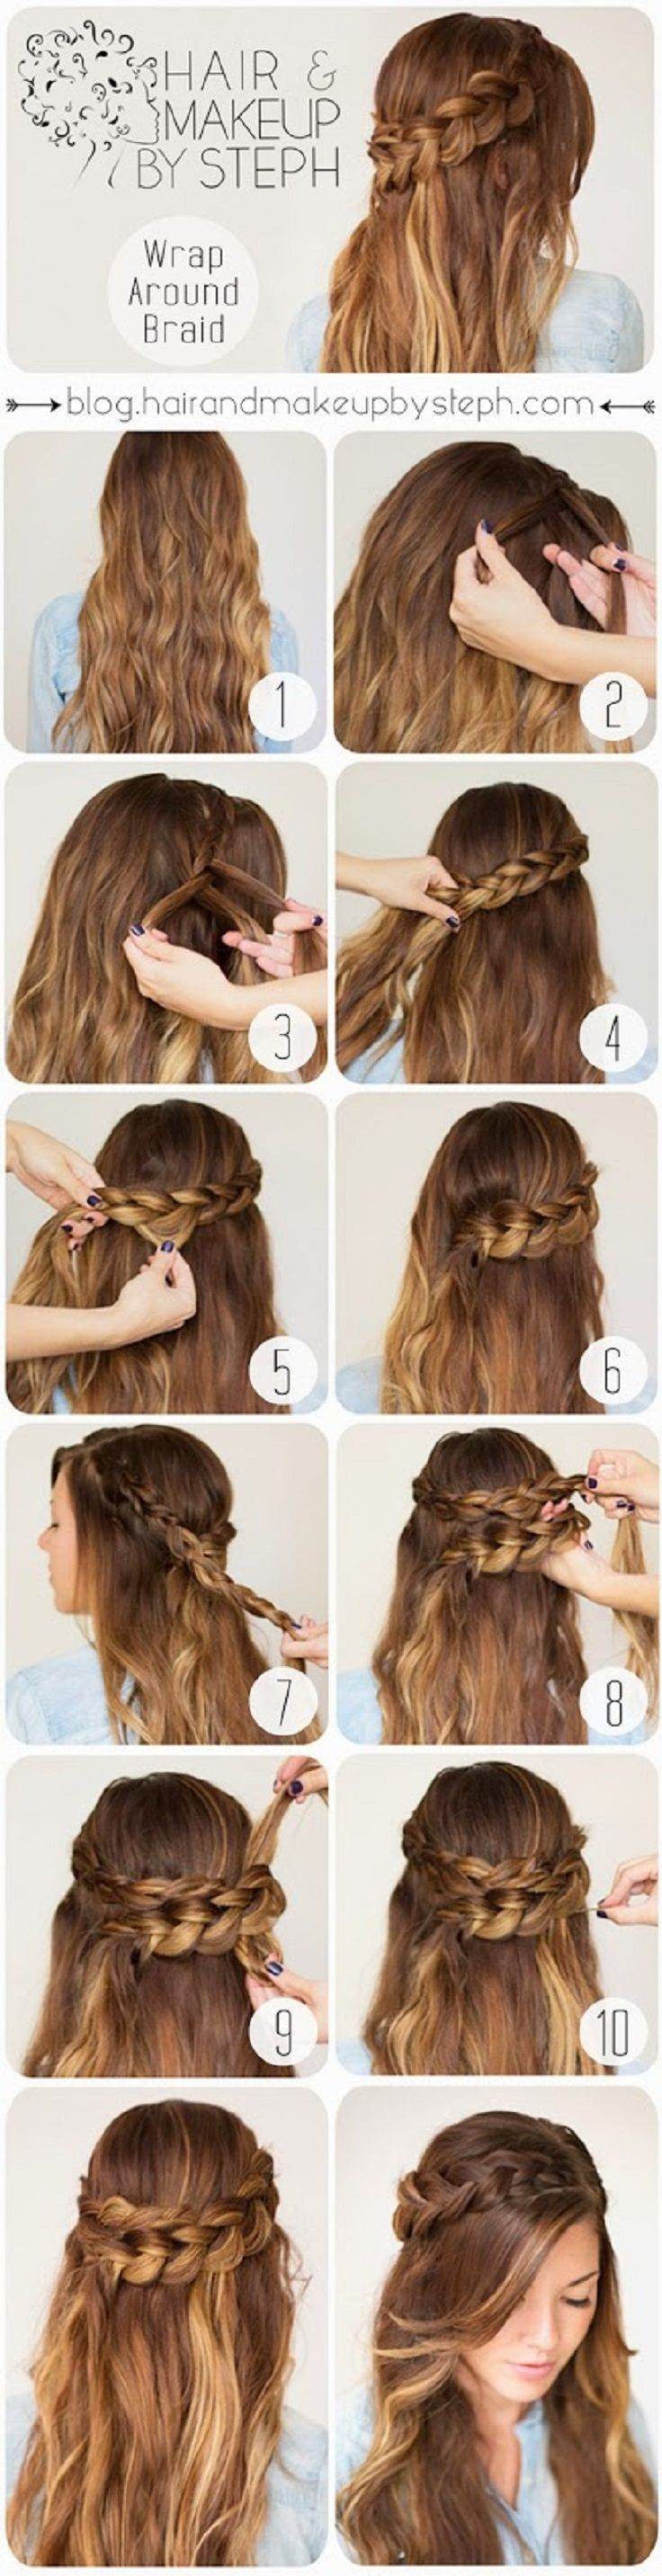 best hair makeup images on pinterest cute hairstyles hairstyle